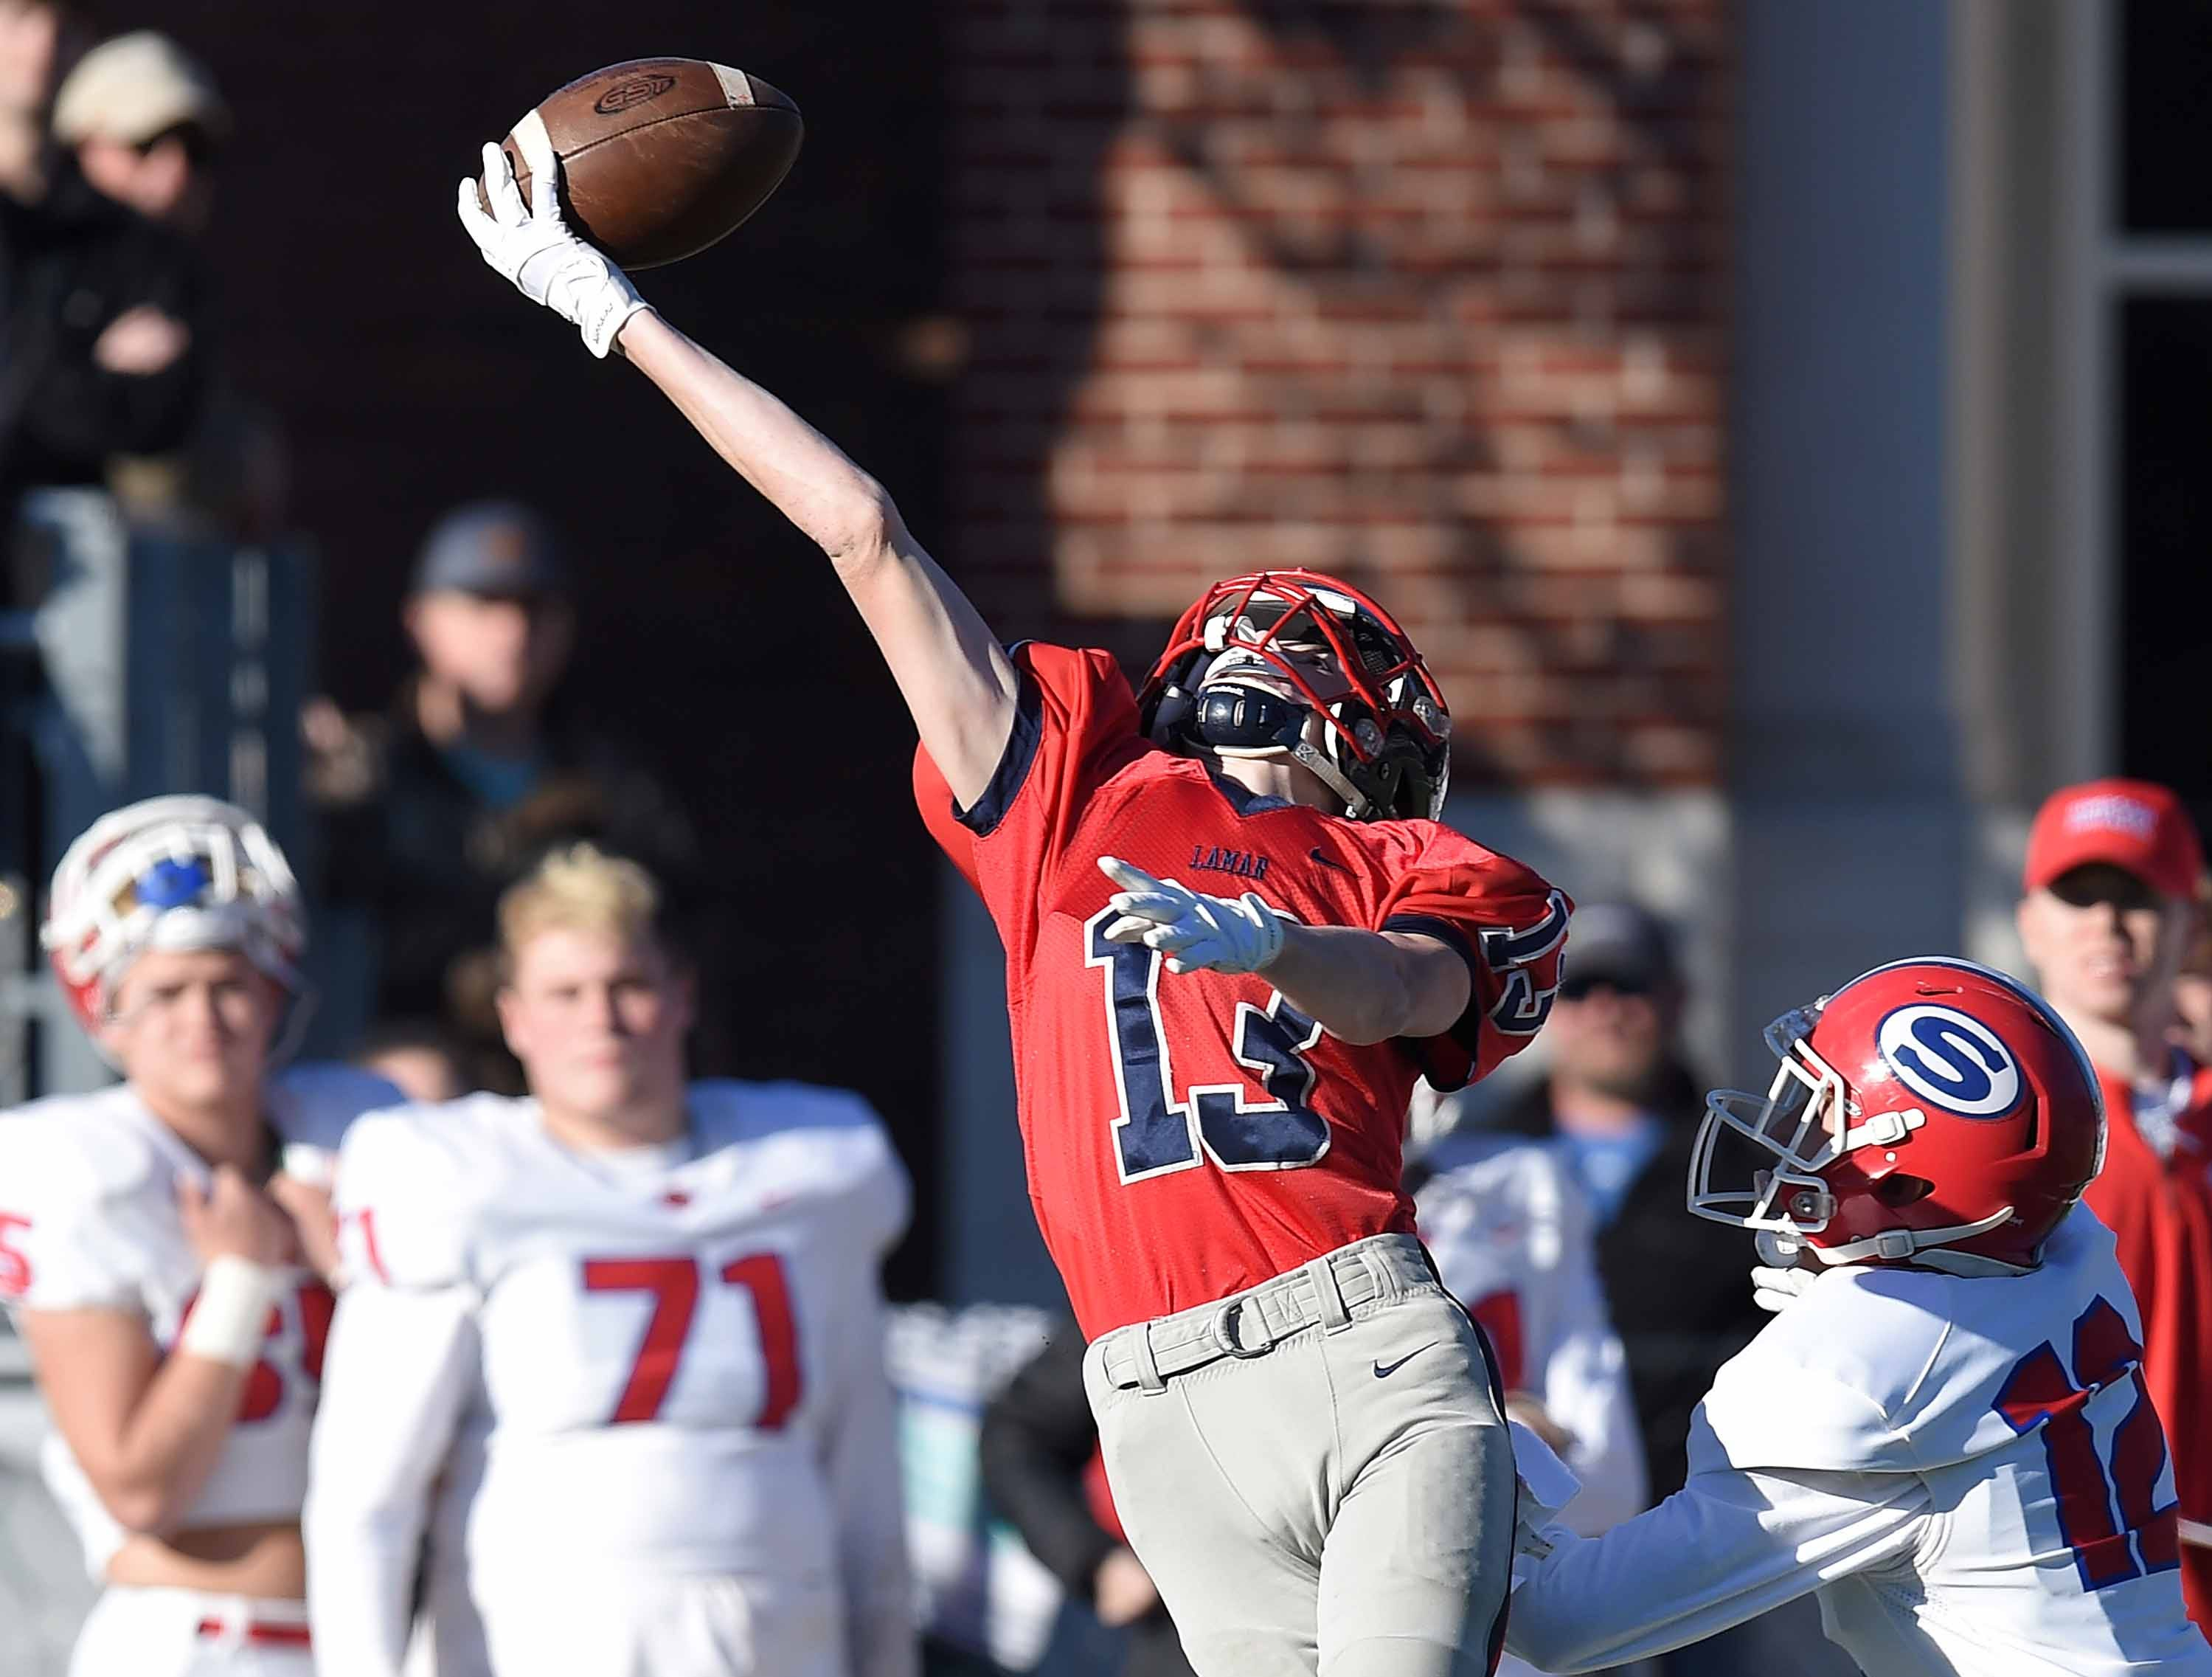 Lamar School's Jacob Partridge (13) stretches for a pass along the Simpson Academy sideline on Thursday, November 15, 2018, in the MAIS Class AAAA-D2 Football Championship at Jackson Academy in Jackson, Miss.